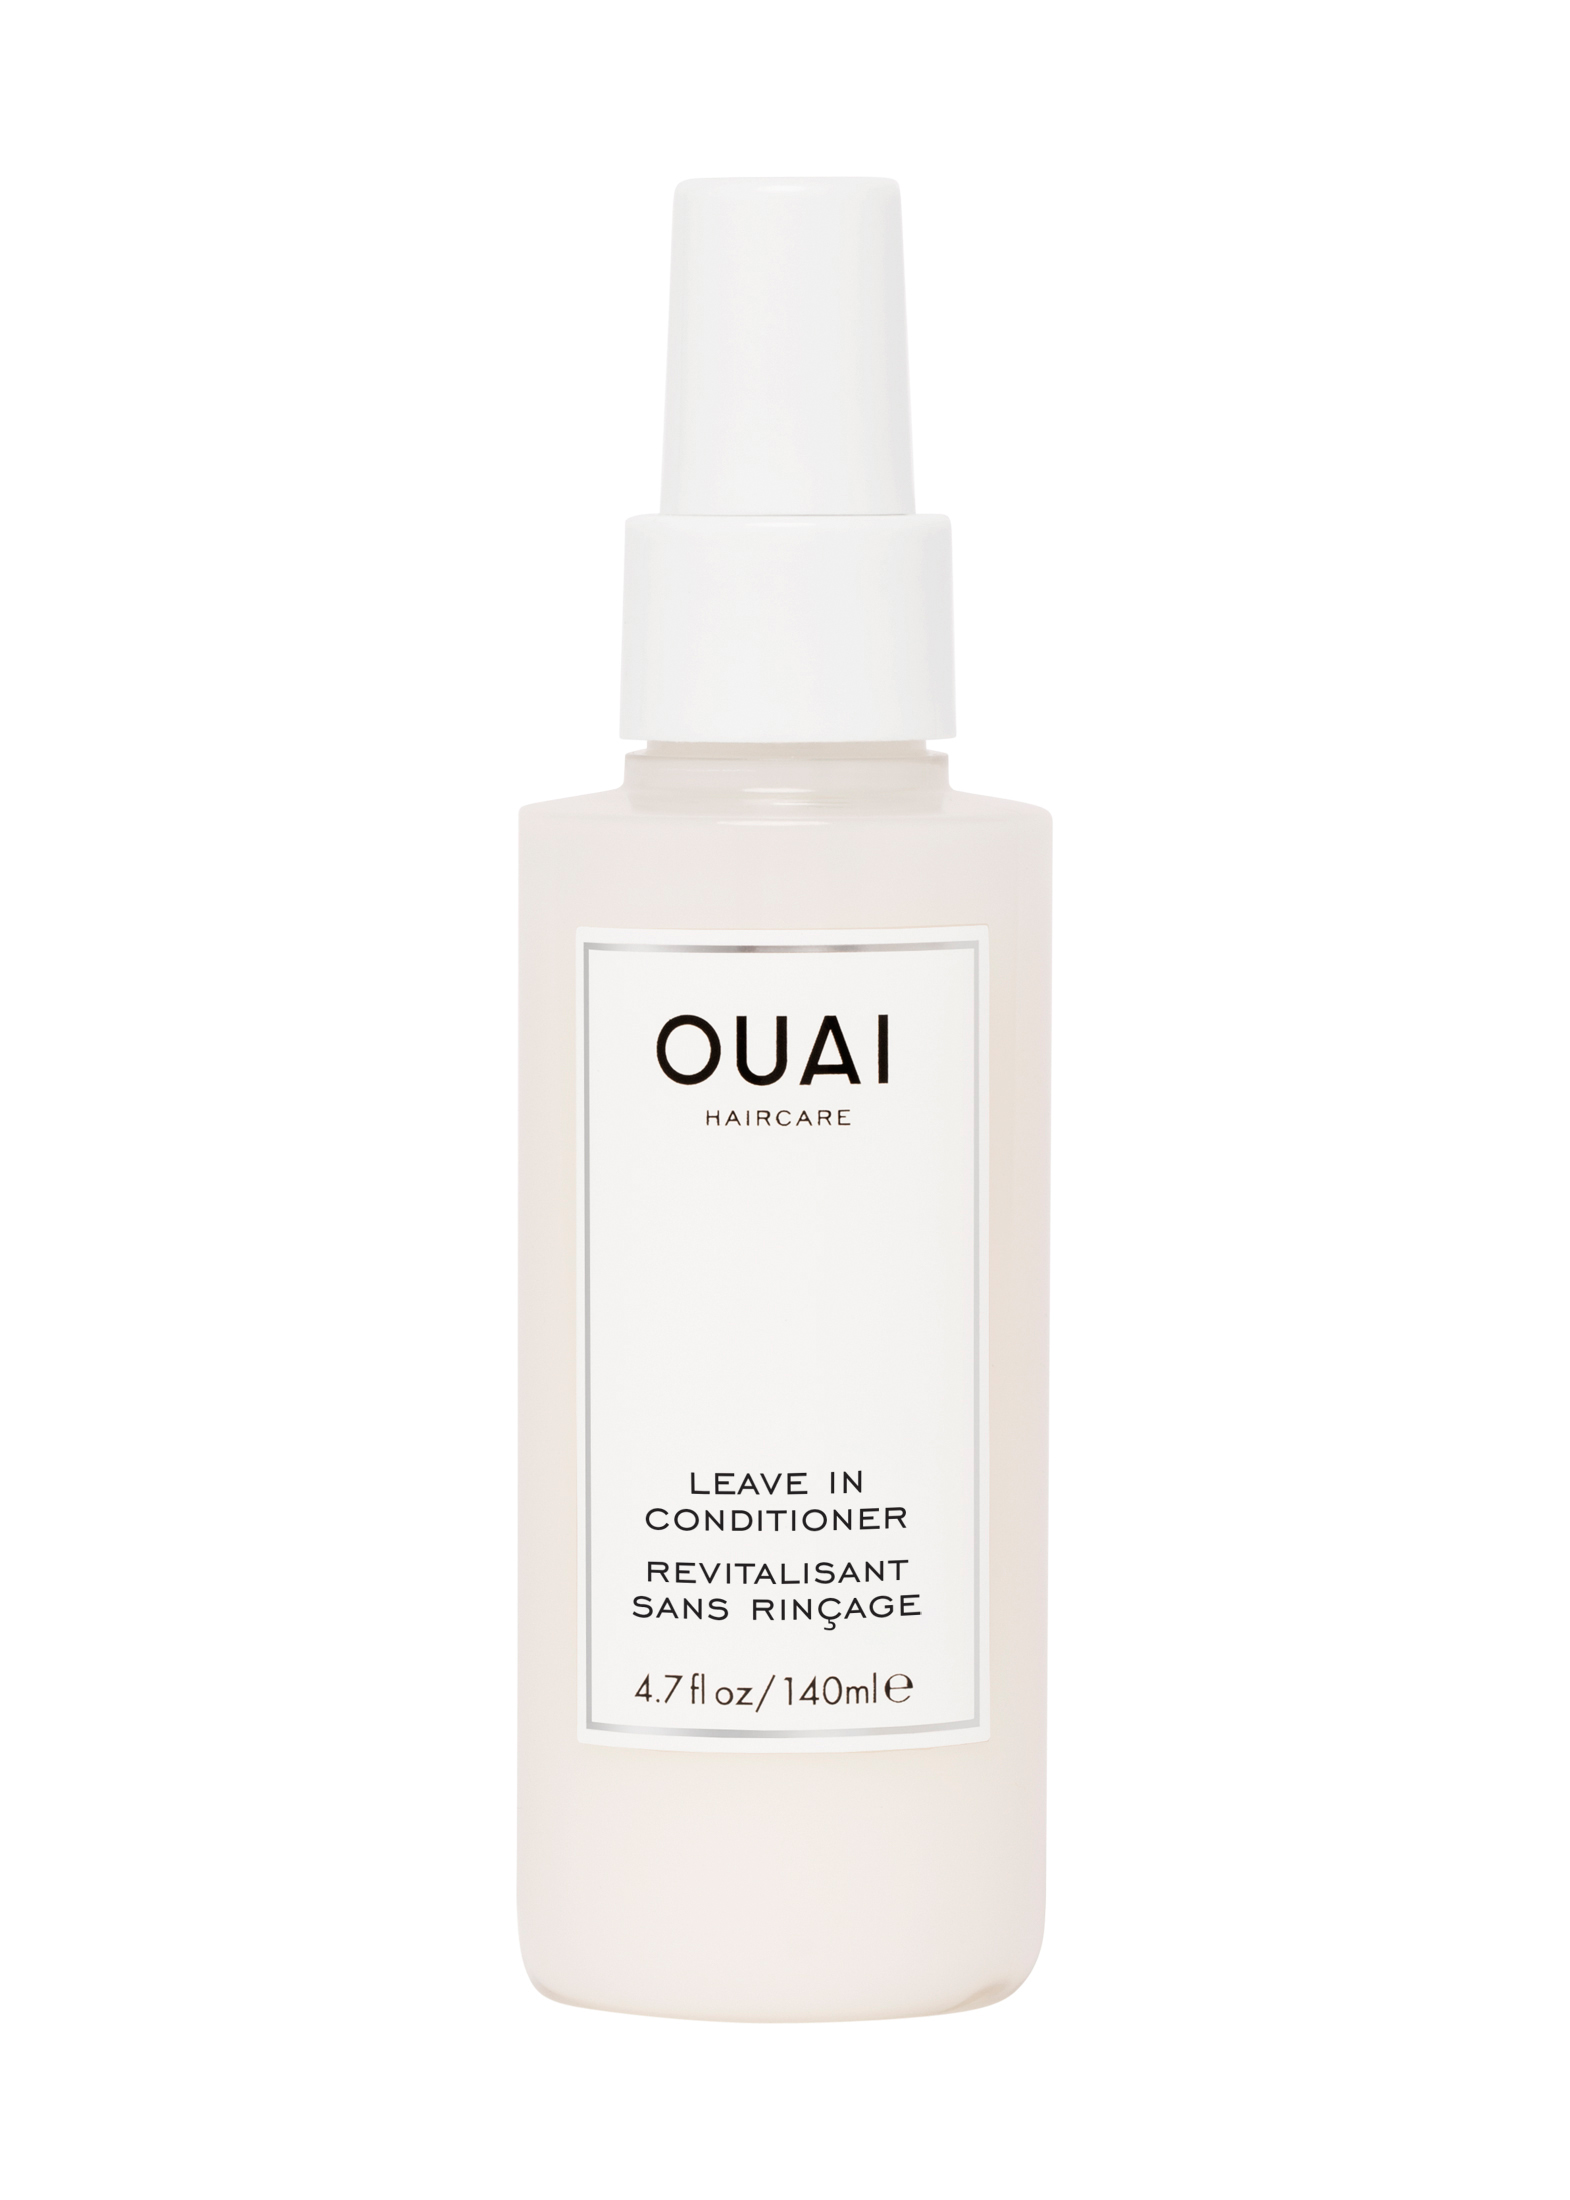 Ouai LEAVE IN CONDTIONER 140ml image number 0